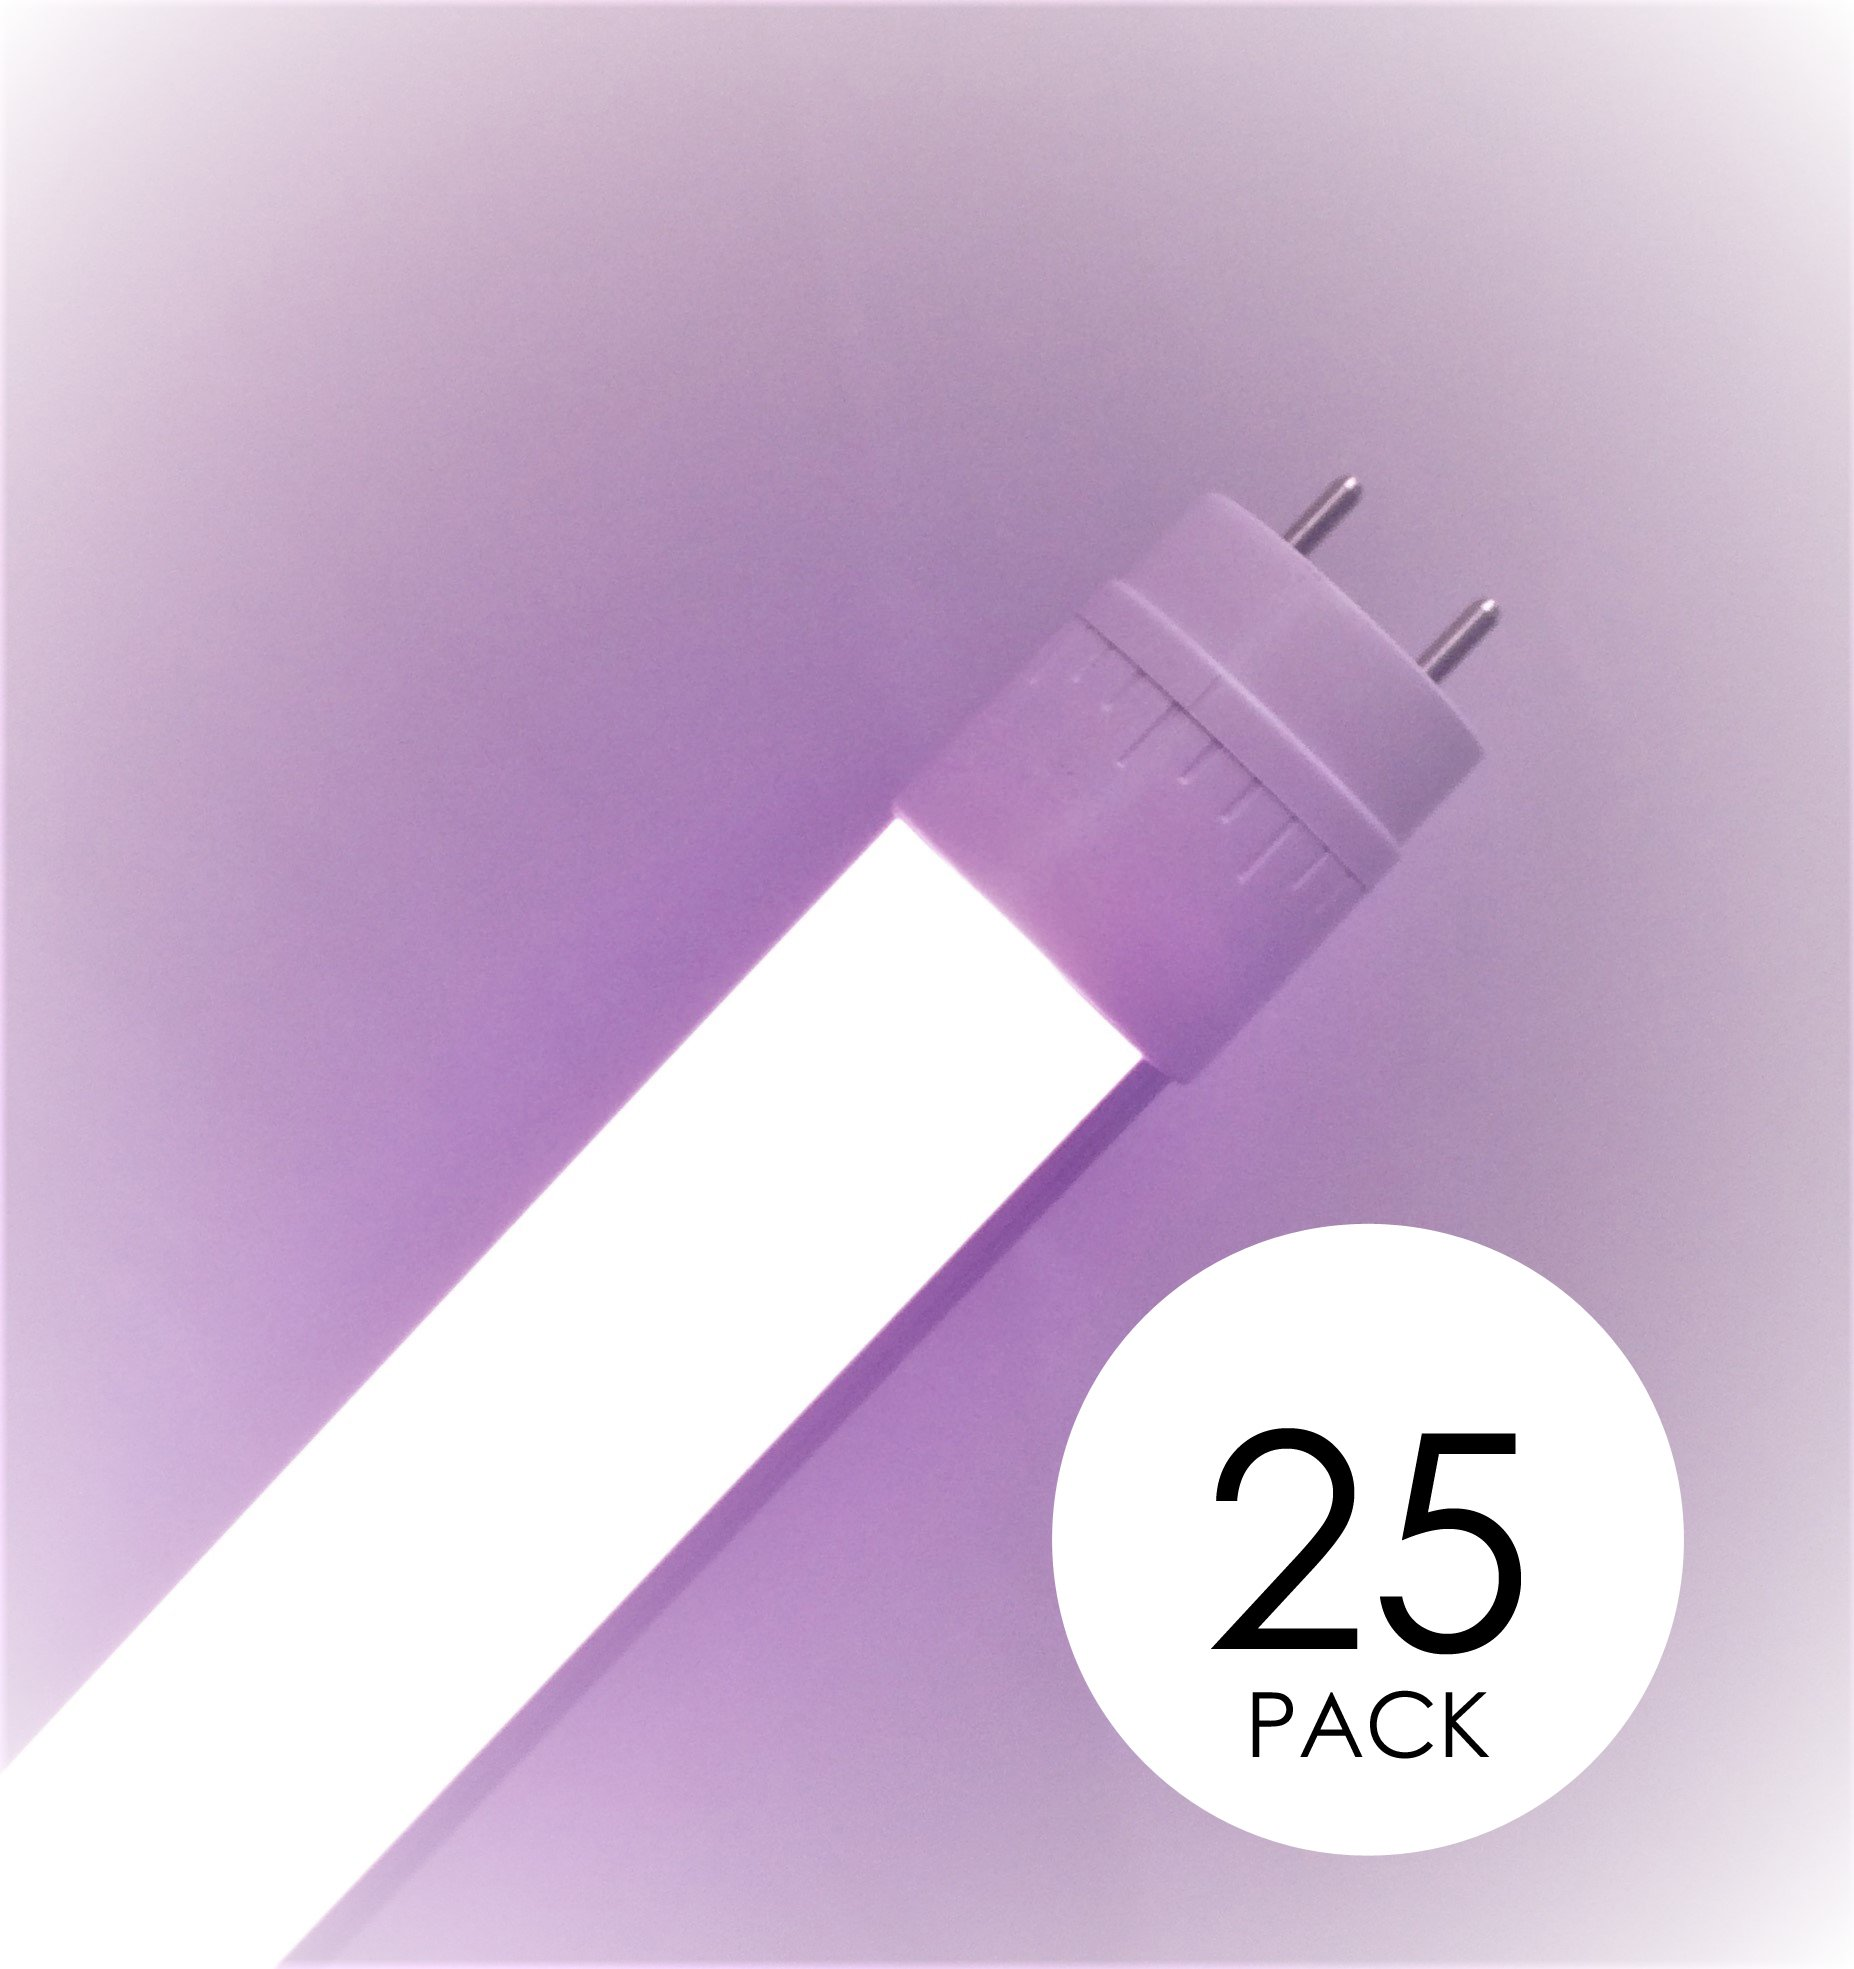 25 pack Promolux T8 LED for Meat, Seafood and Produce 4FT (48in) Ballast Compatible